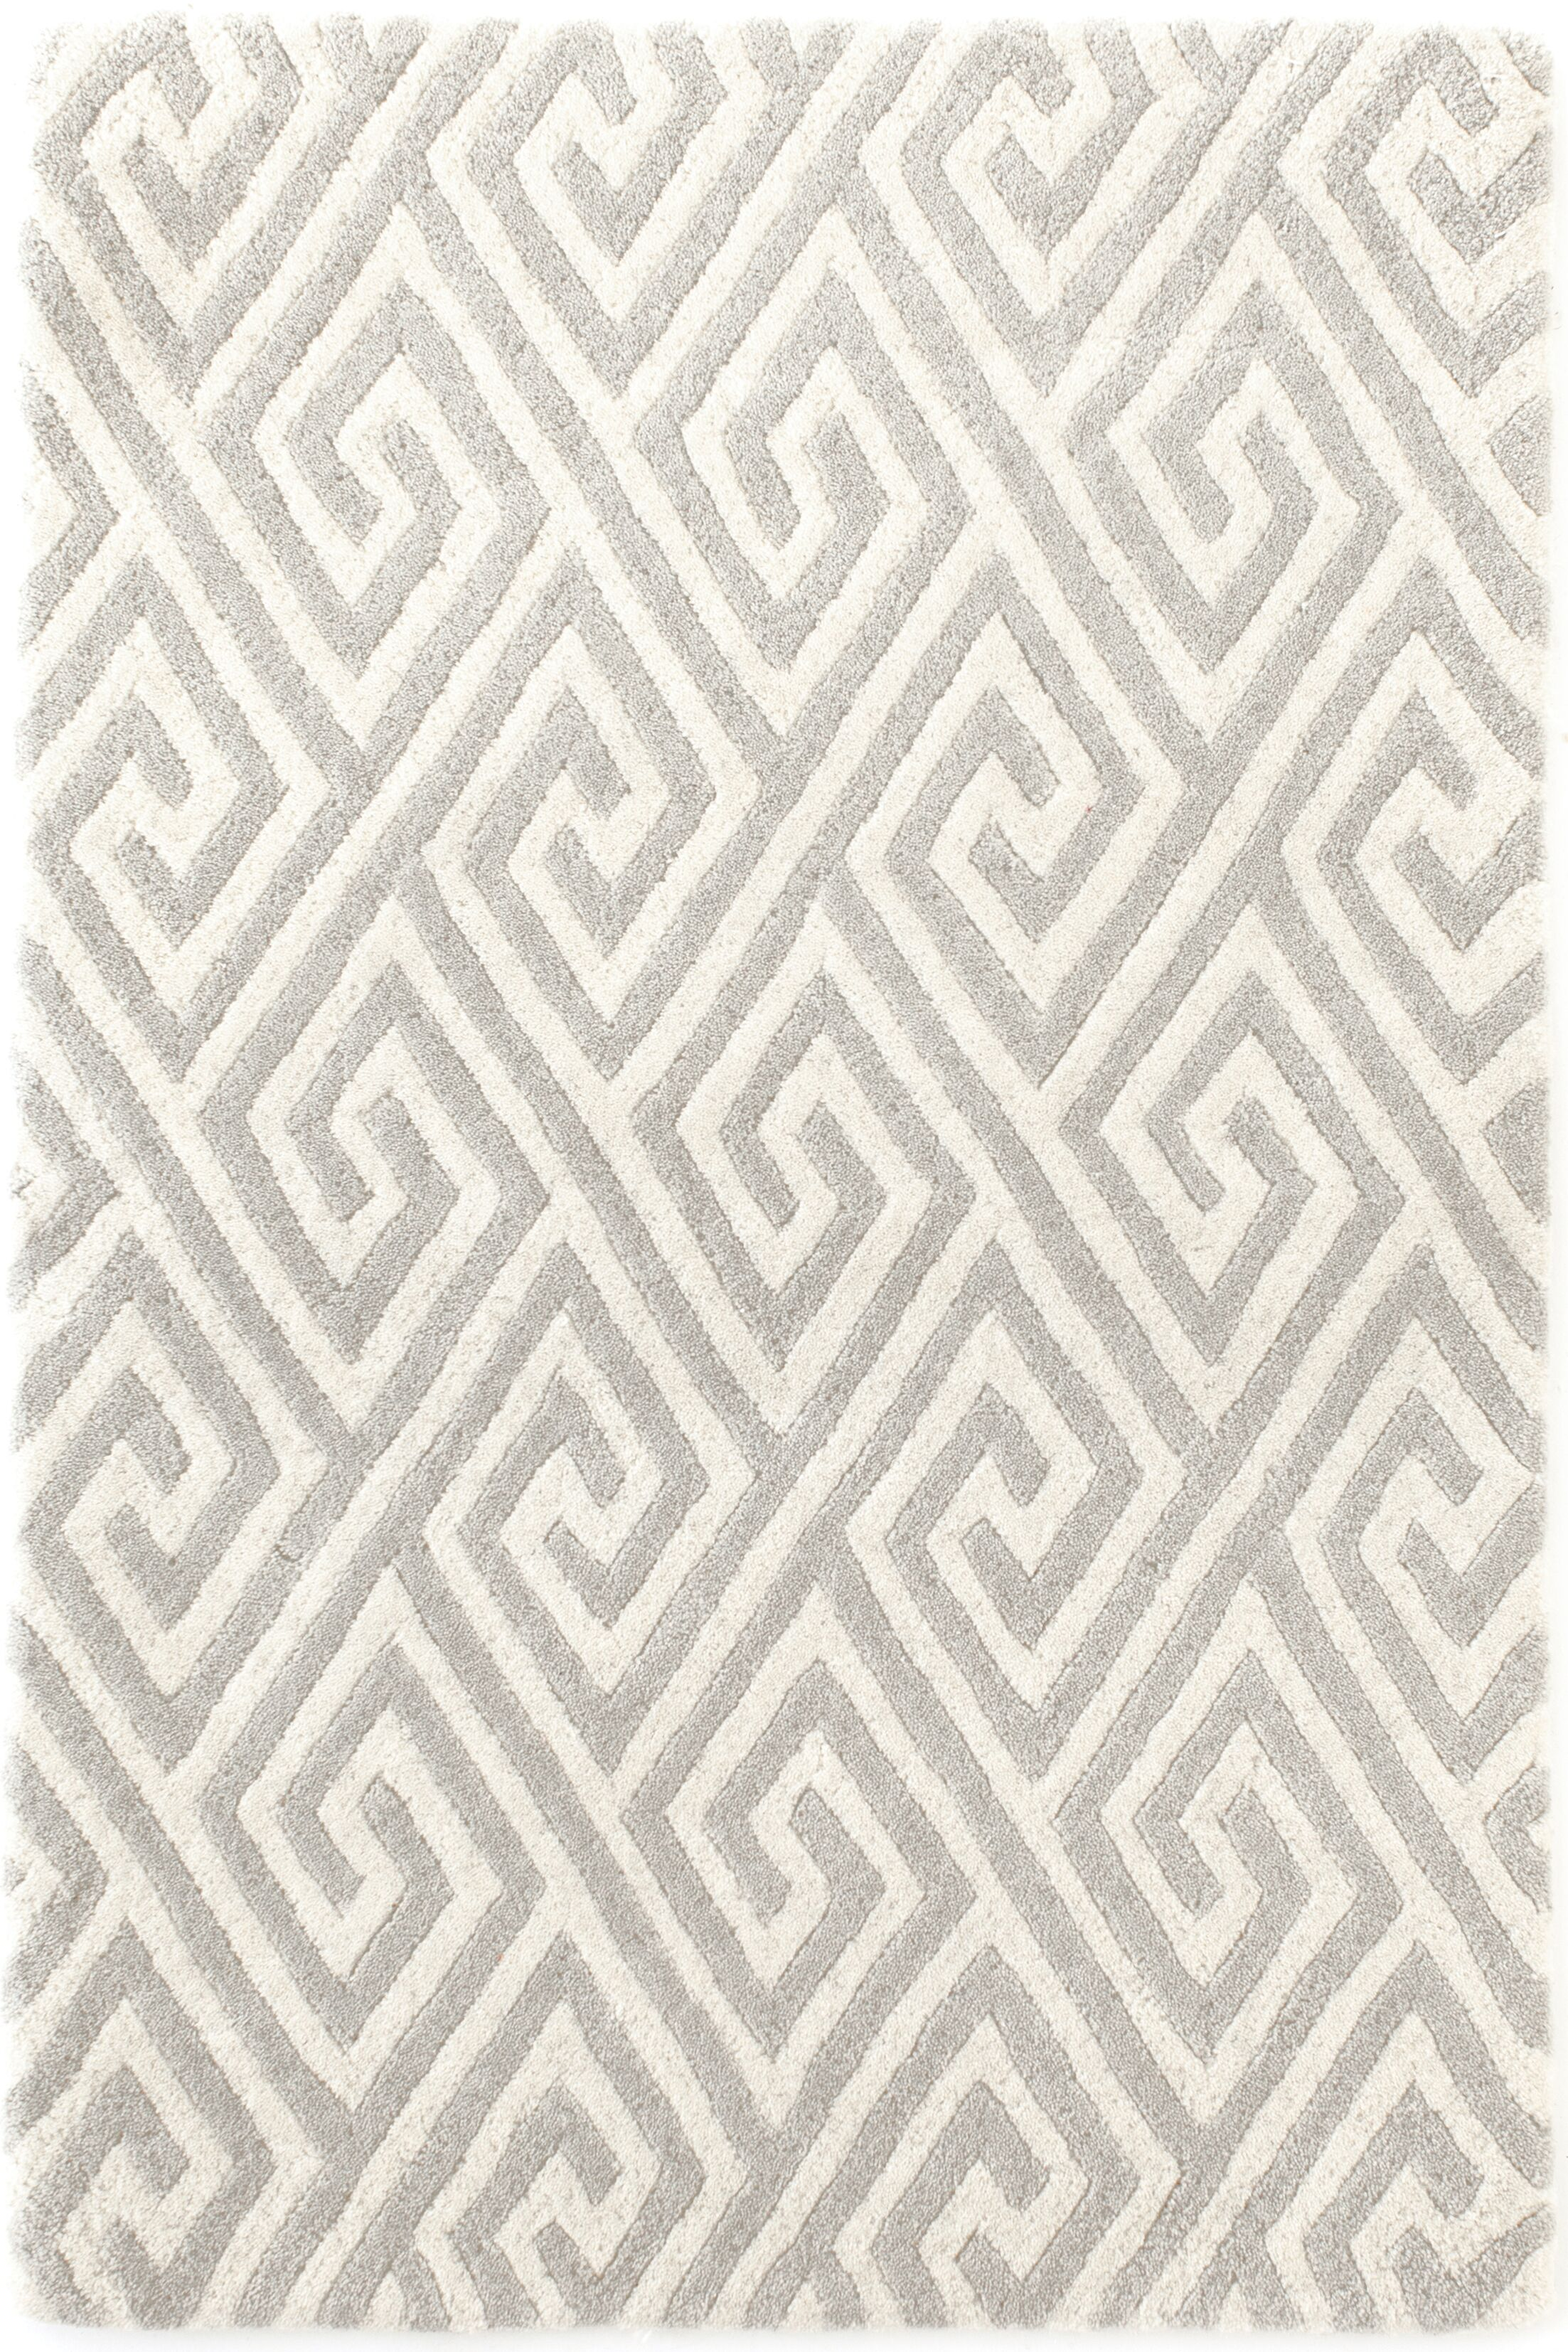 Fretwork Tufted Grey Area Rug Rug Size: Rectangle 3' x 5'